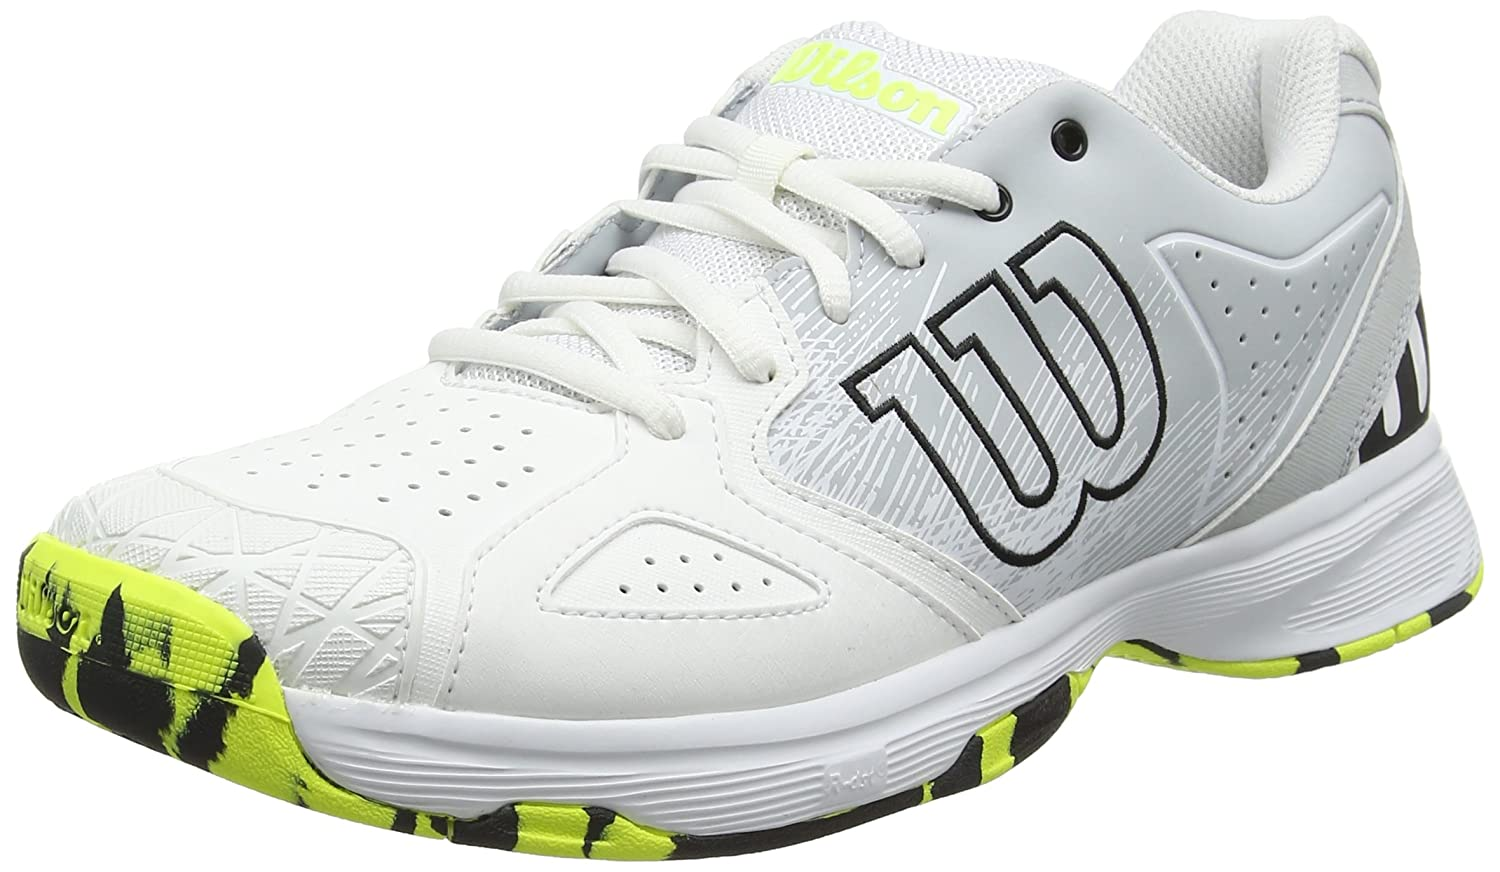 Wilson Kaos Devo, Zapatillas de Tenis para Hombre 42 2/3 EU|Blanco (White / Pearl Blue / Safety Yellow 000)